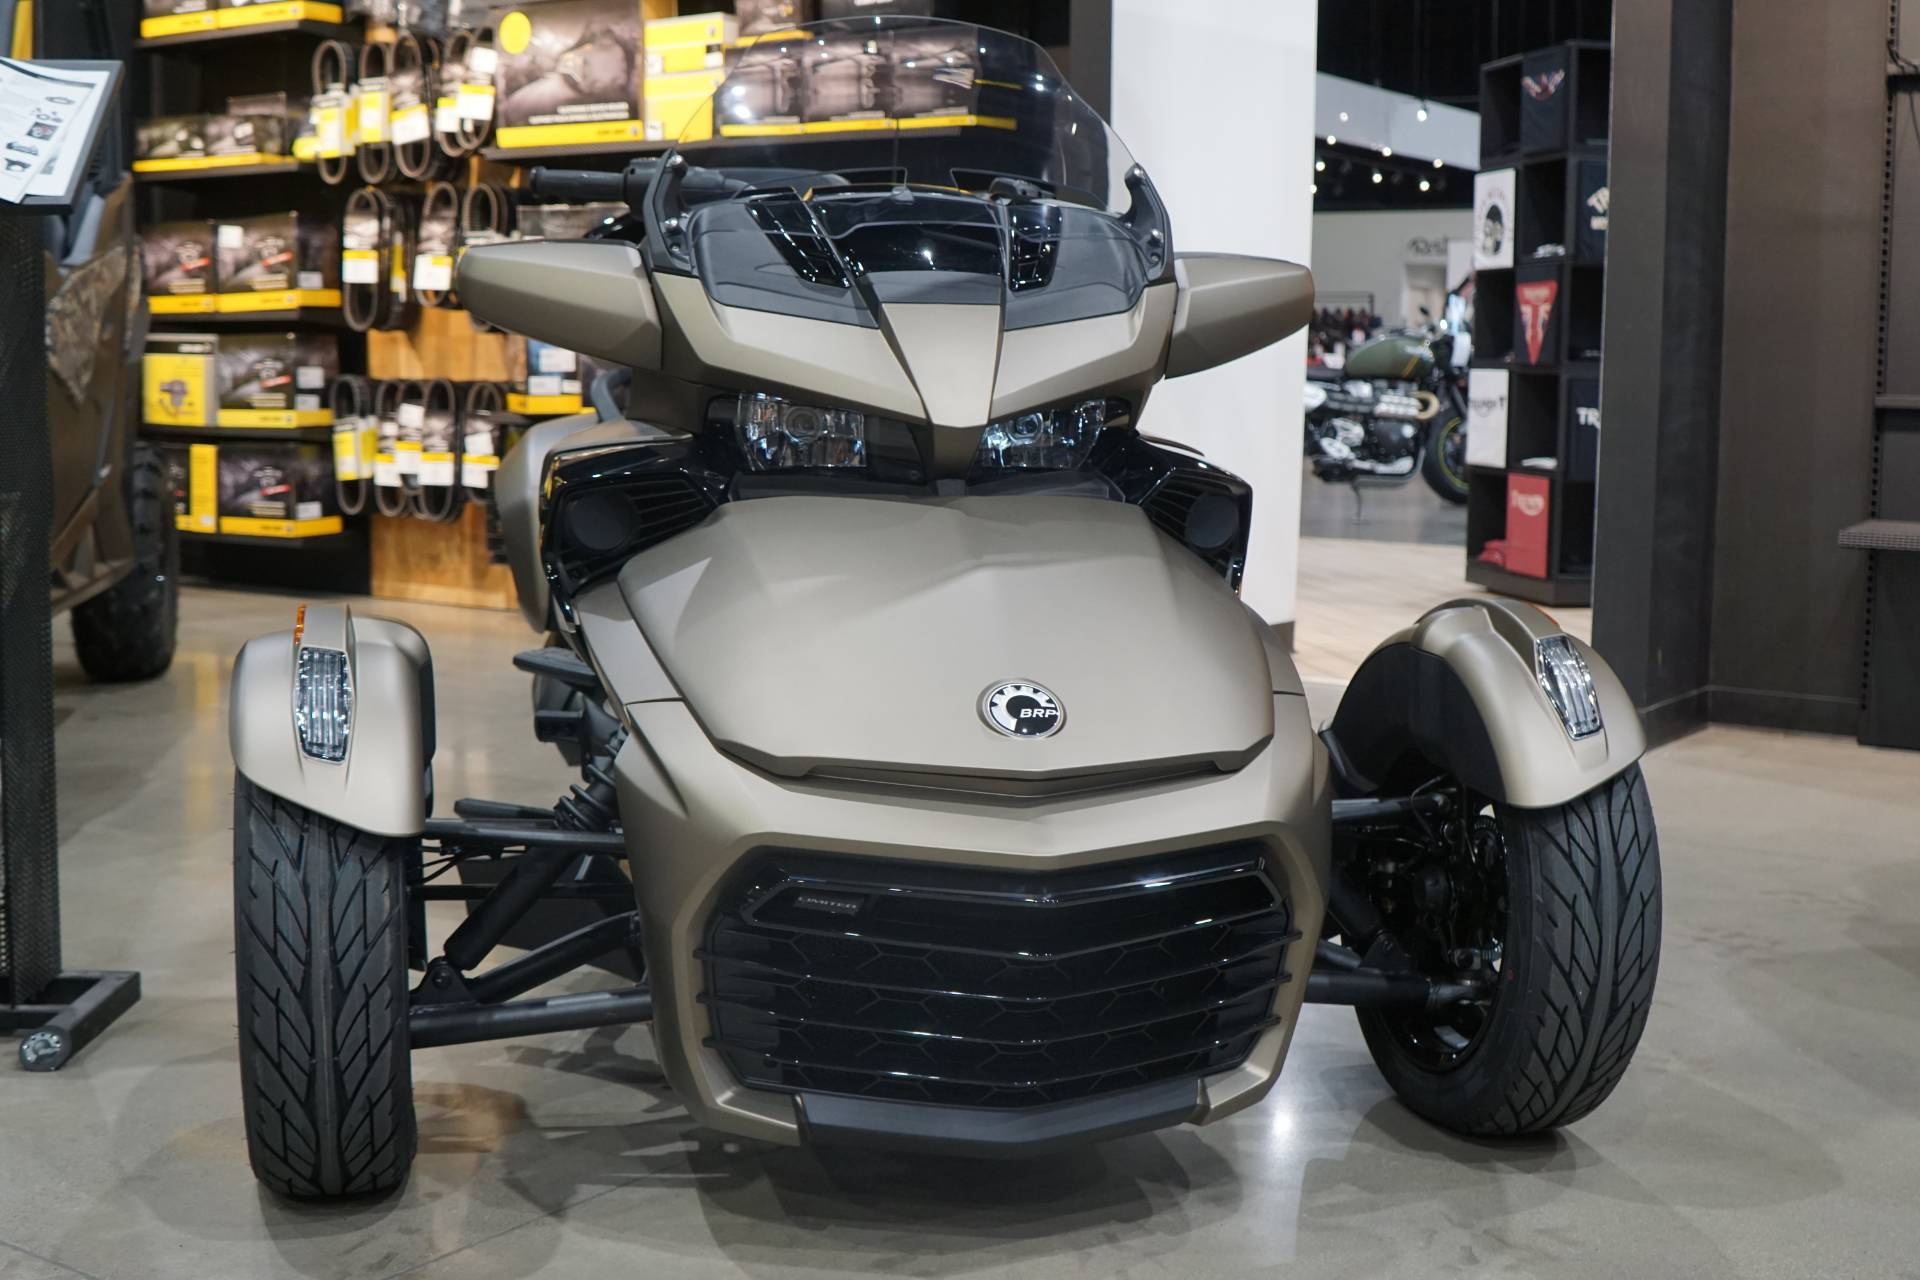 2021 Can-Am Spyder F3 Limited in Elk Grove, California - Photo 2